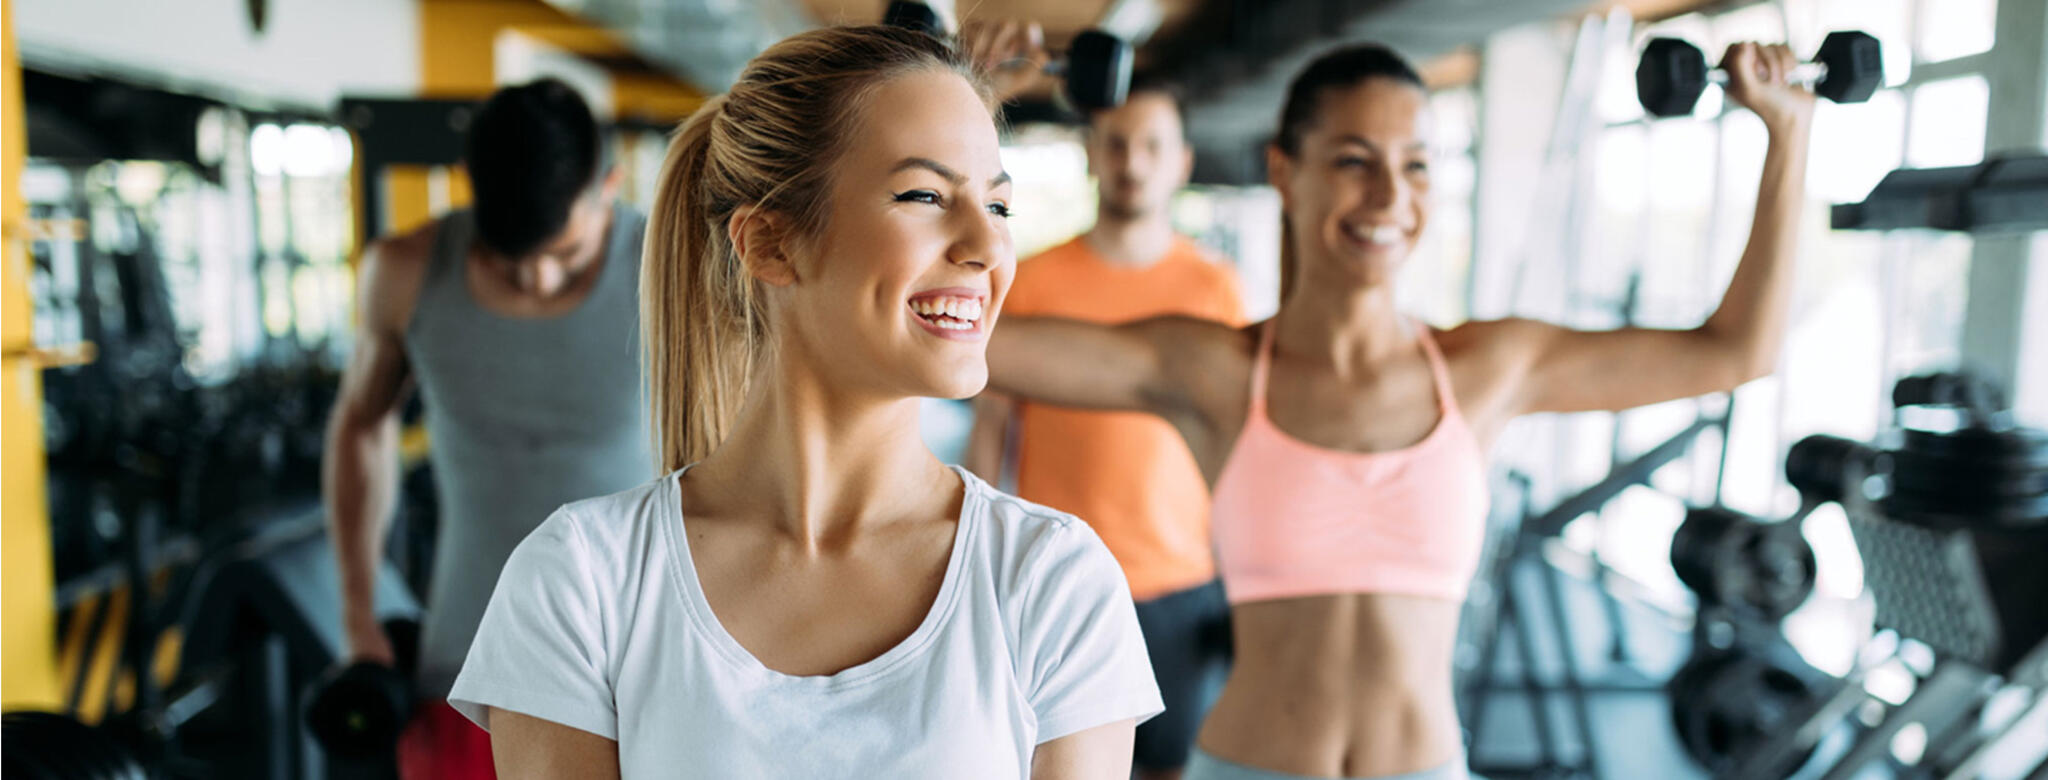 blonde woman lifting weights with others in gym